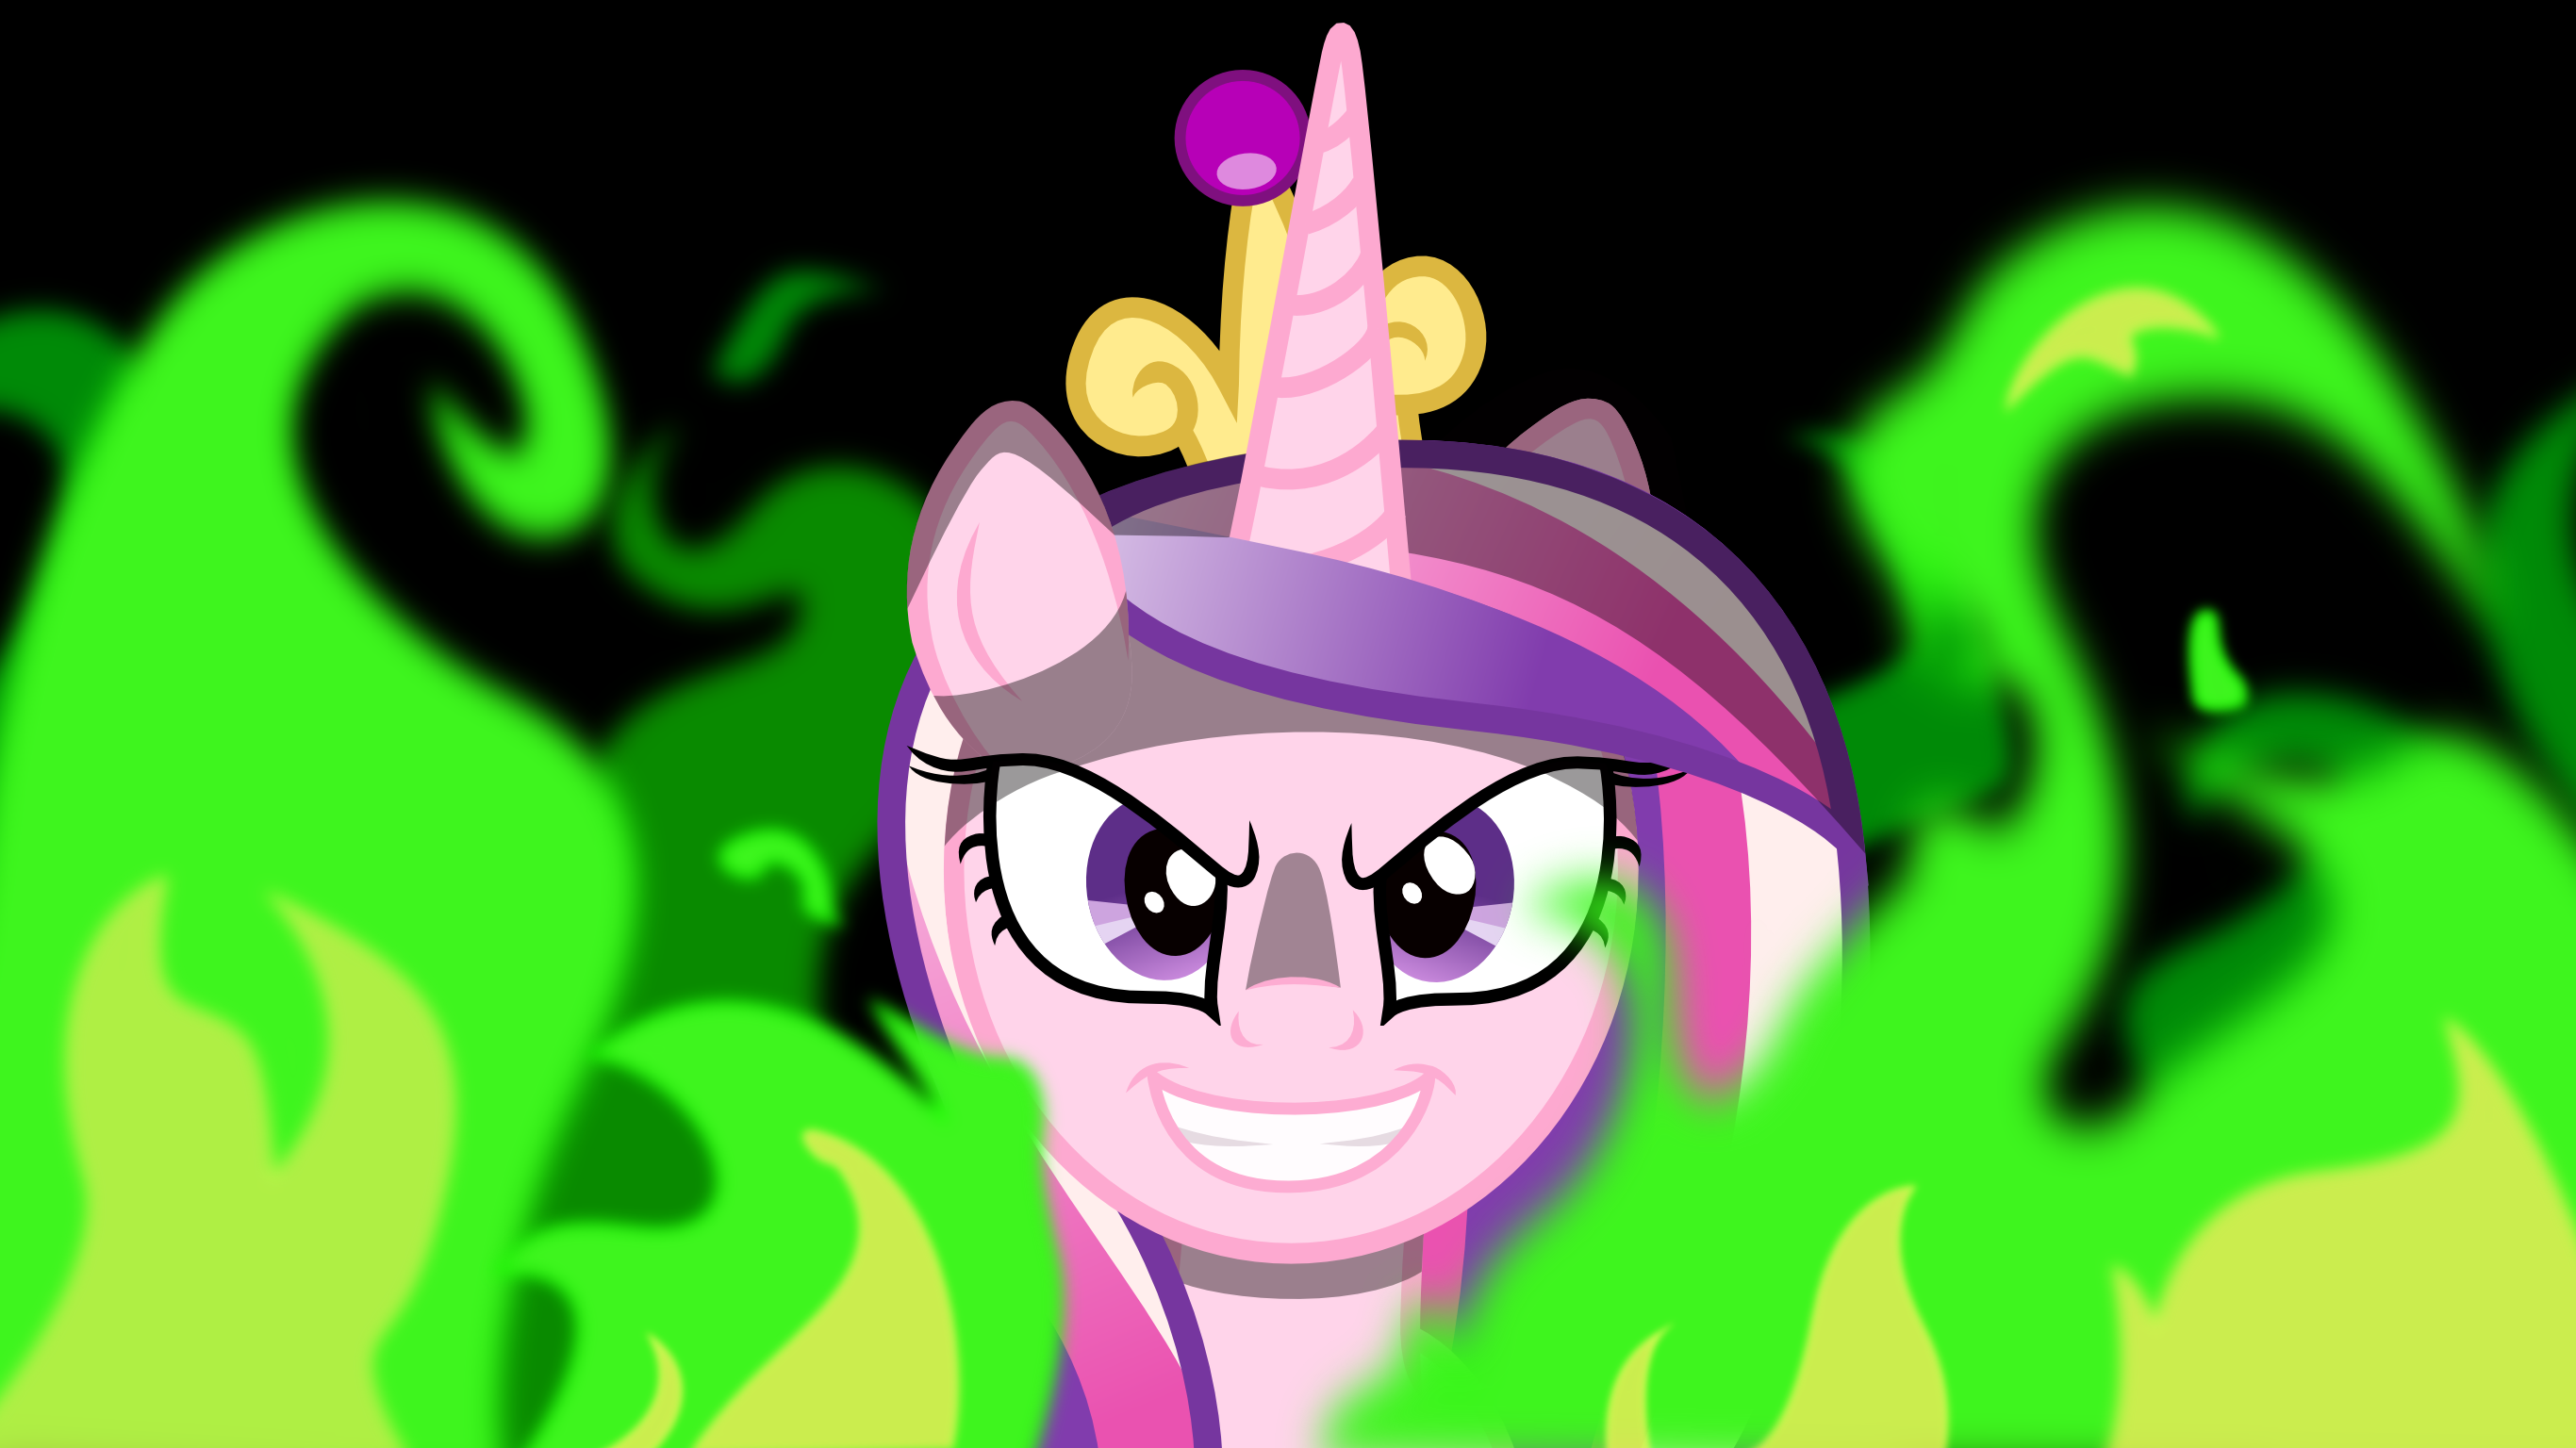 Evil Cadence in Flames wallpaper by MyLittlePinkieDash